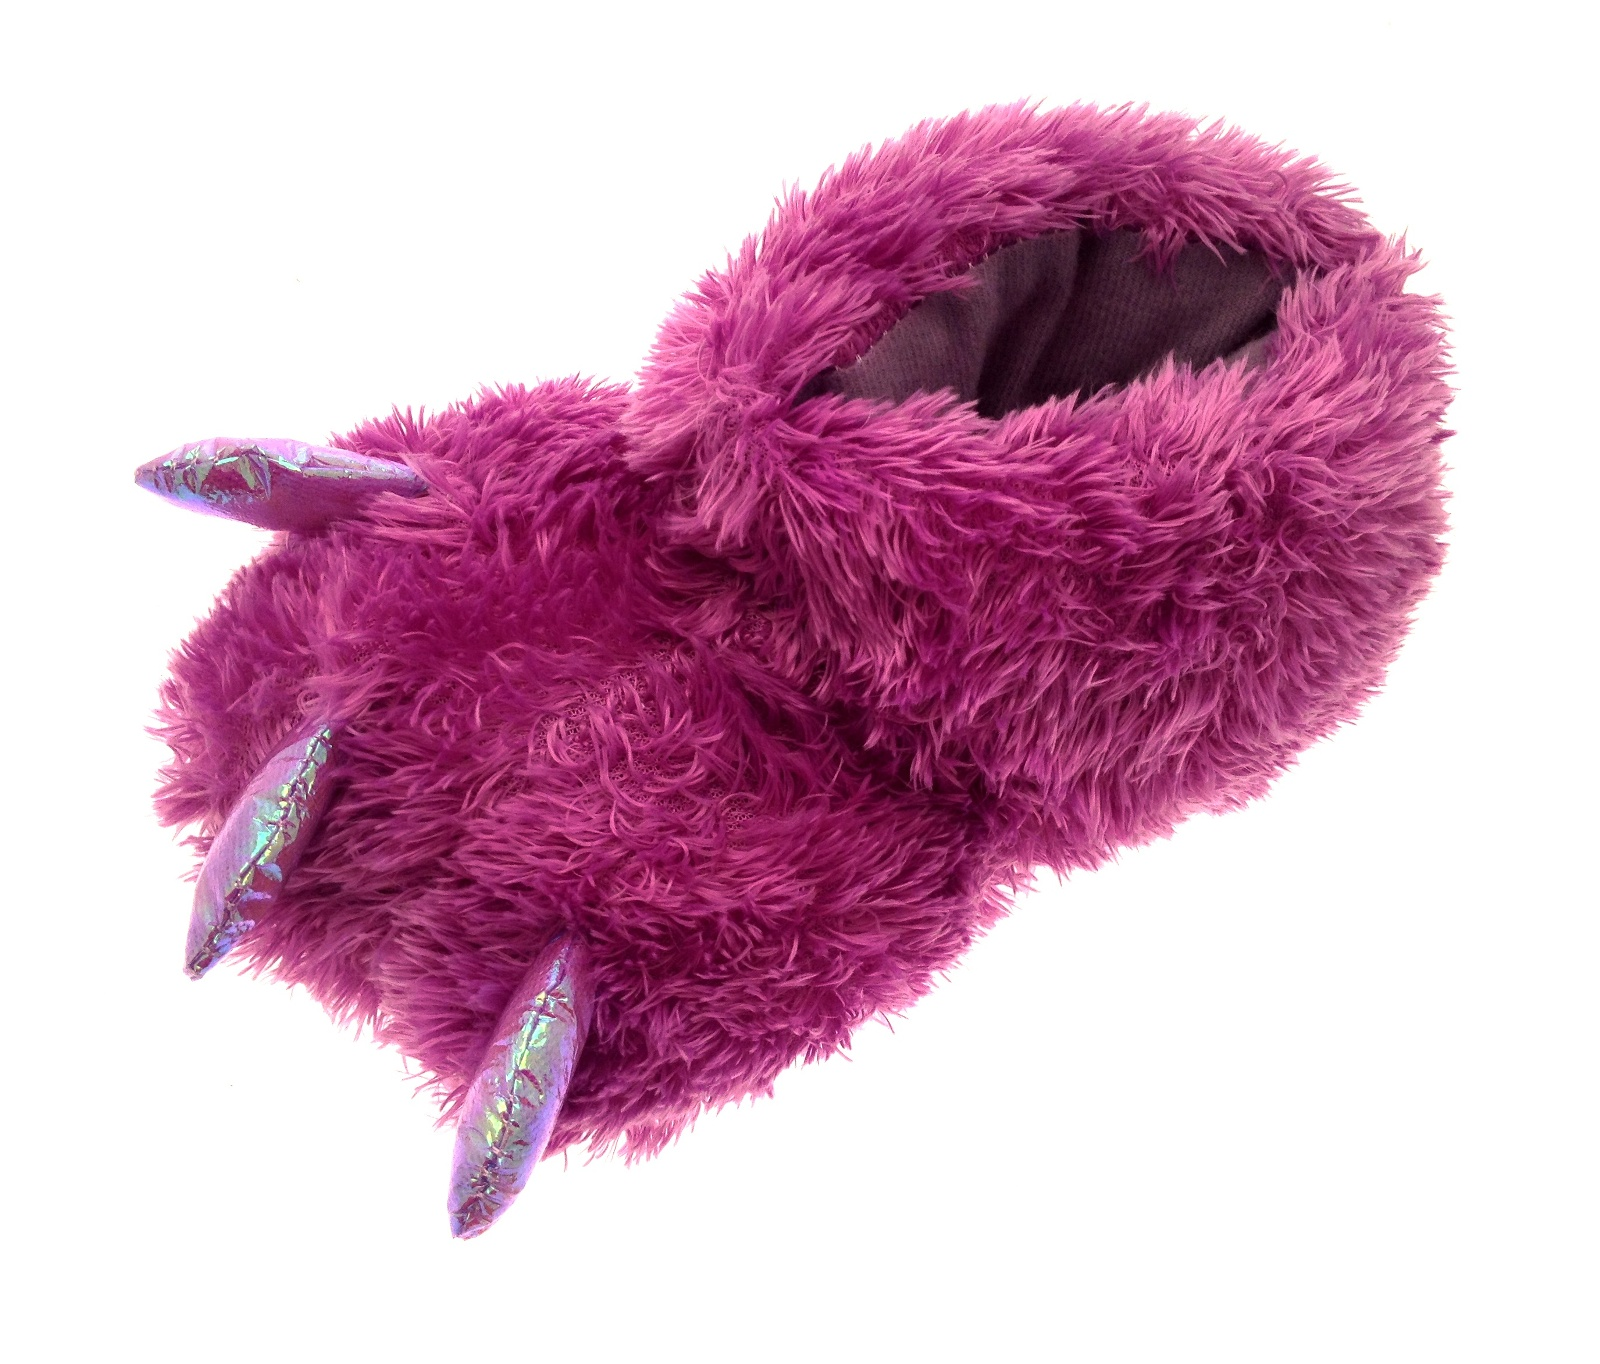 Kids Red Monster Slippers. 1 reviews. $ Monty Python Killer Rabbit Slippers. 27 reviews. $ Toddlers Green Monster Feet Slippers. 1 reviews. $ Get freaky with our creature and monster slippers. Stomp around your home or show some love for the walking undead with awesome Godzilla slippers and zombie slippers. If you want.